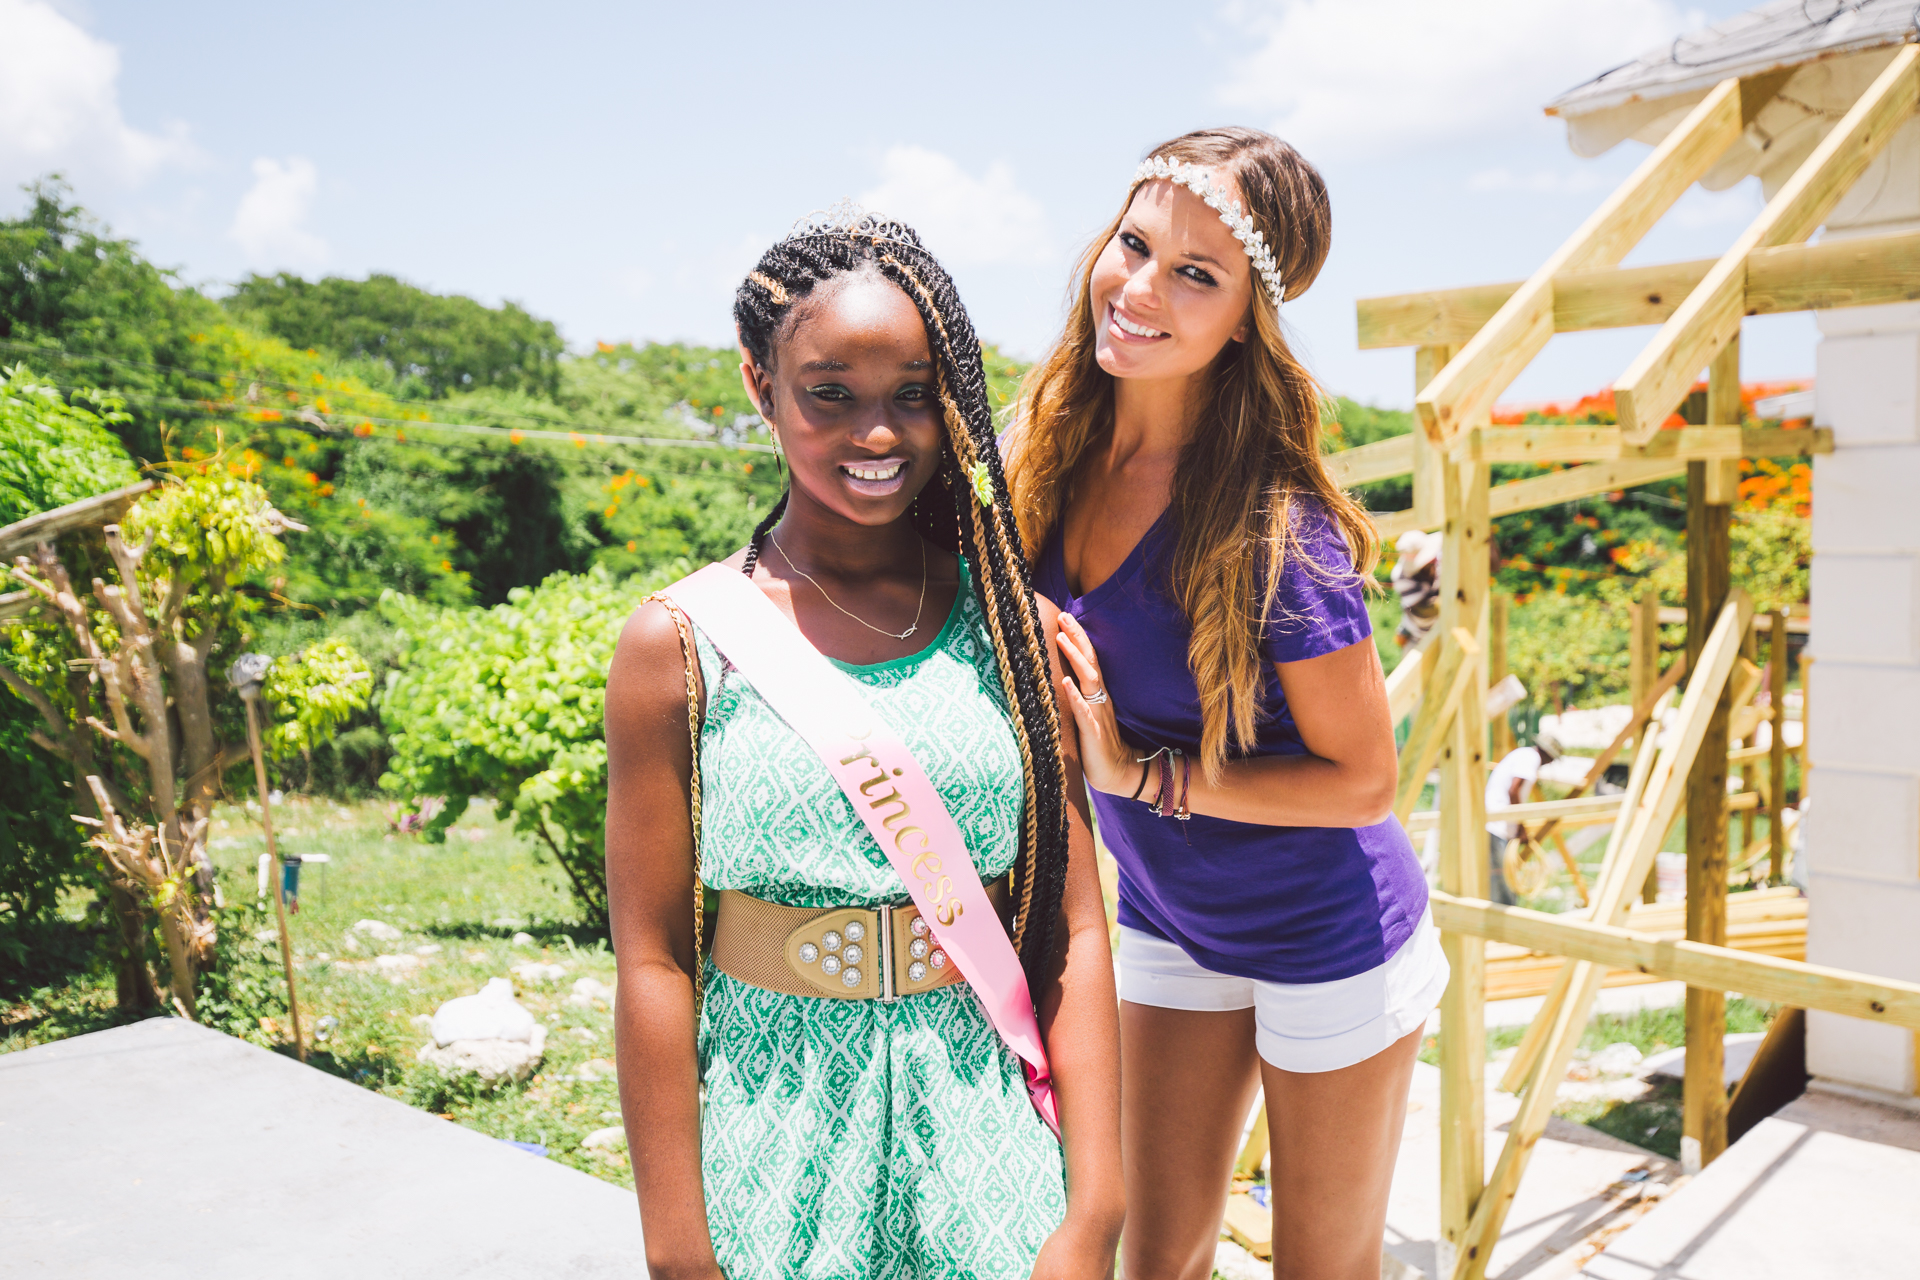 pageant of hope bahamas 2016-193.jpg